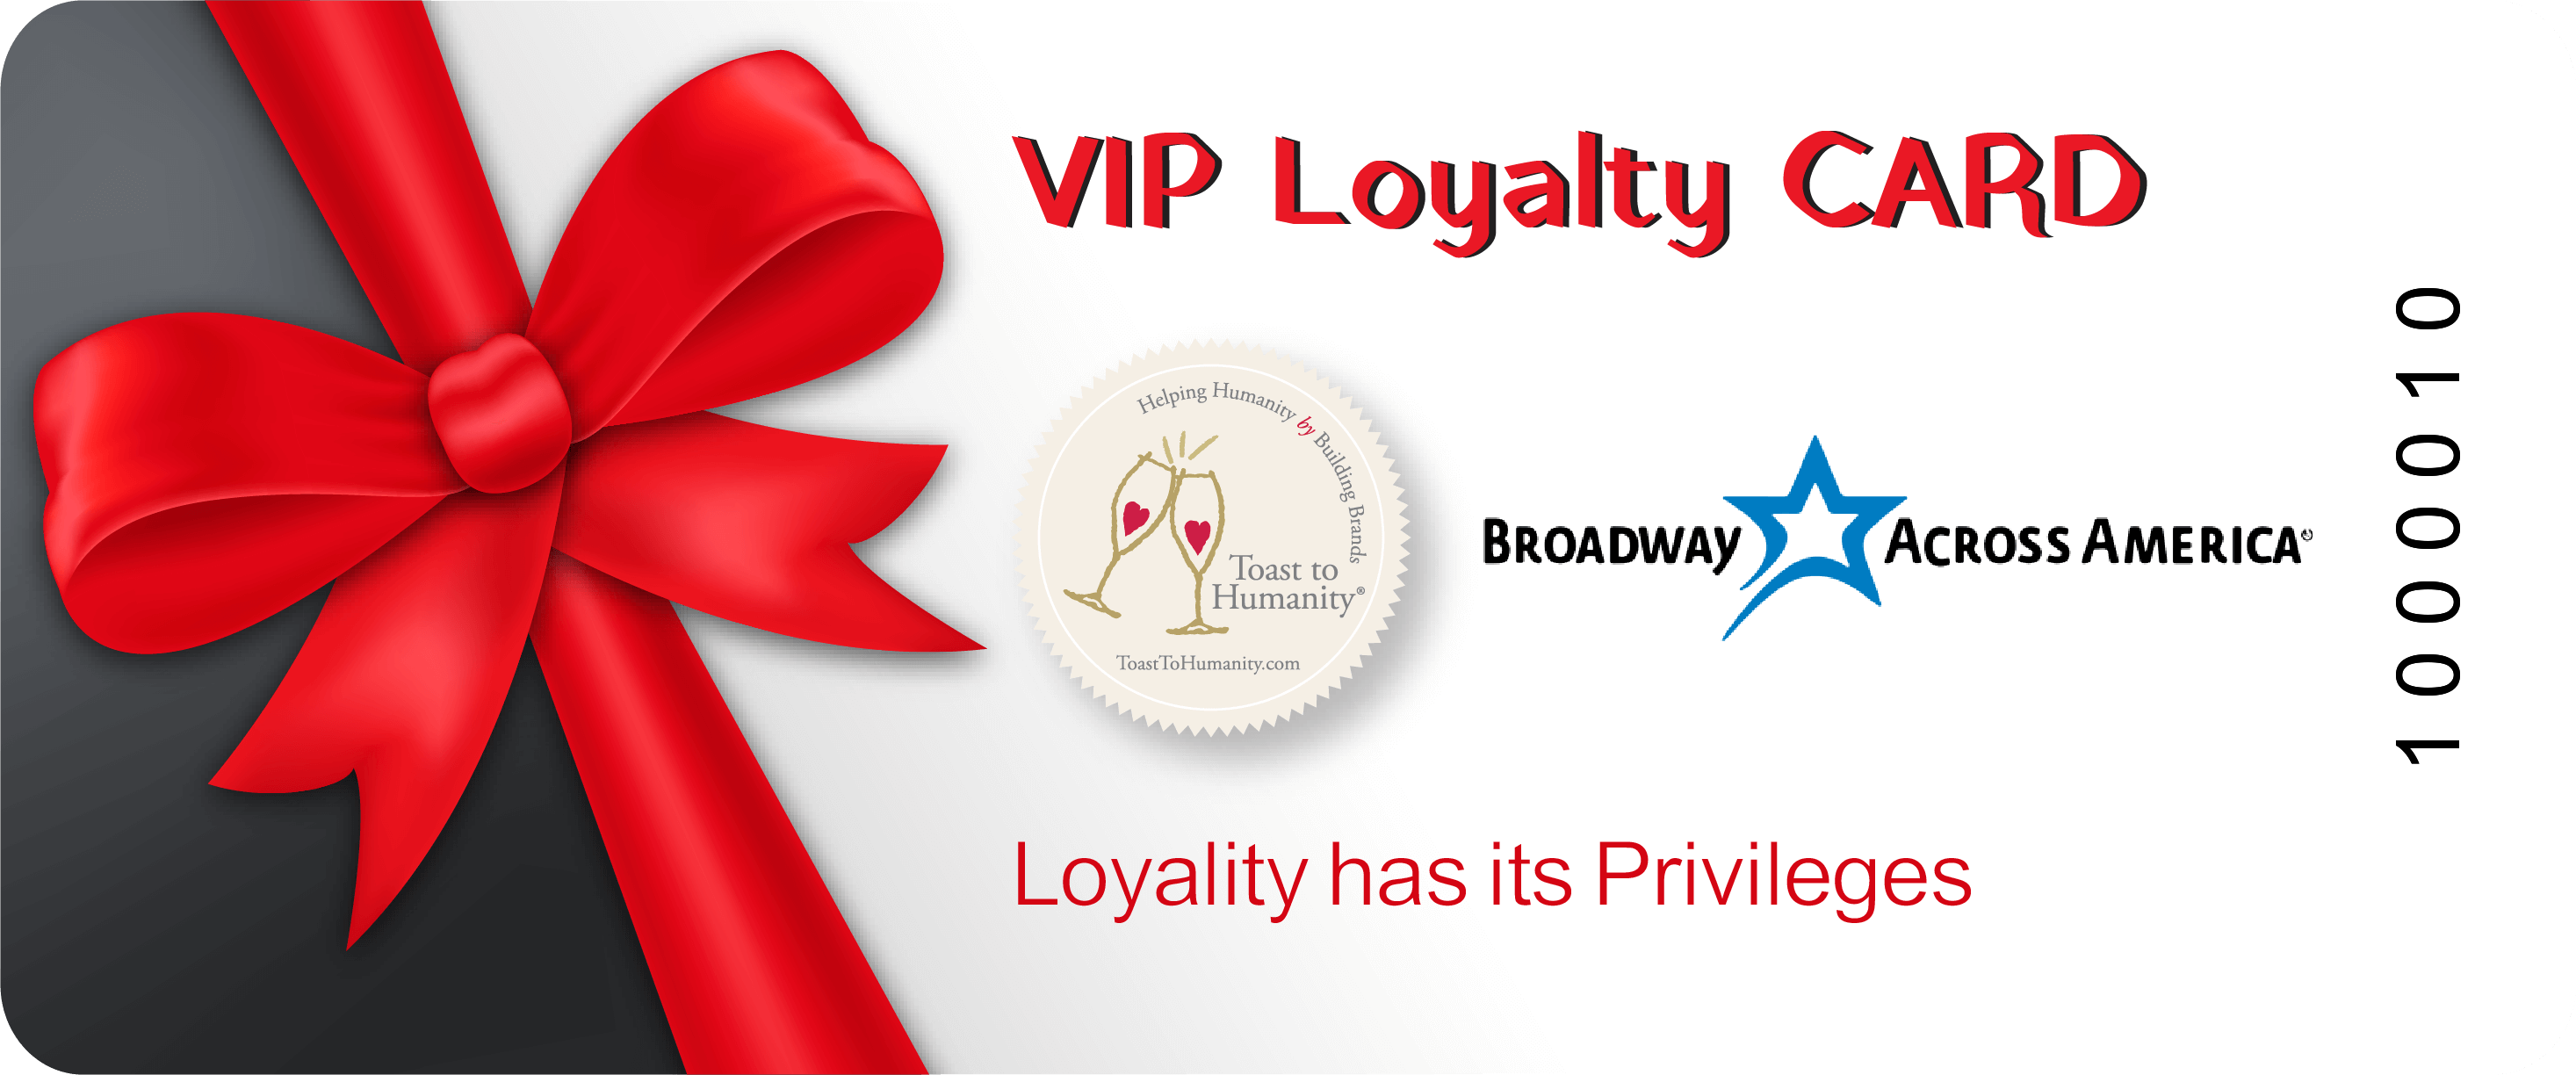 vip loyalty card